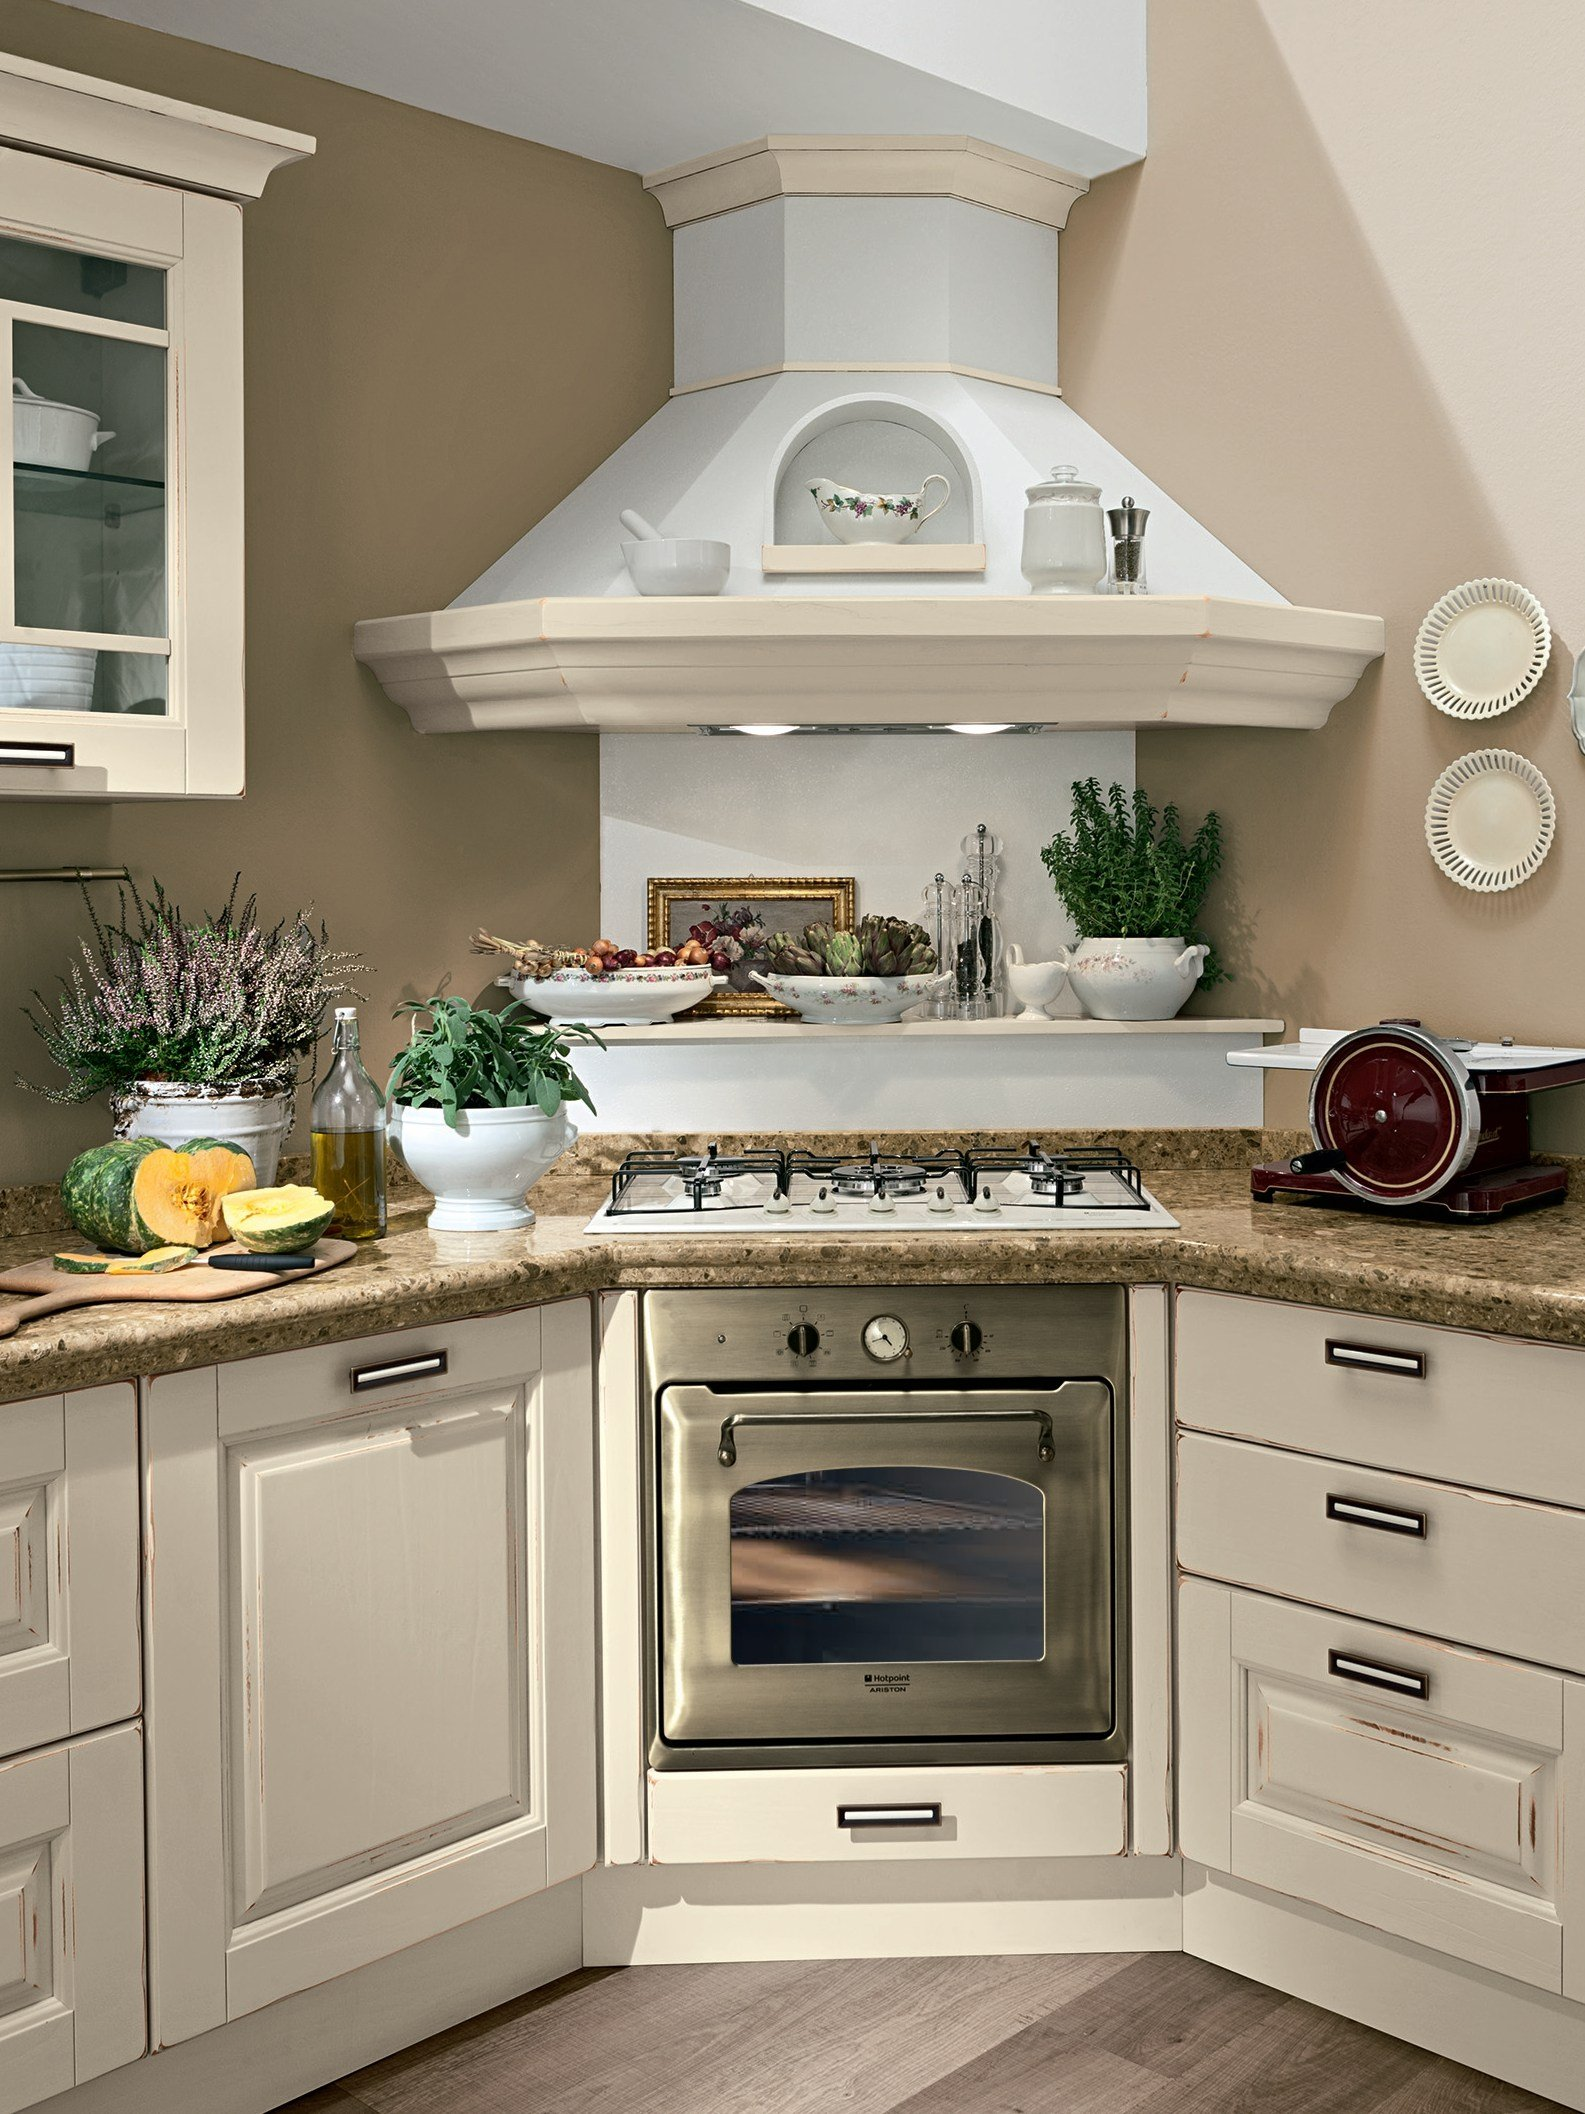 Awesome Cappa Cucina Ad Angolo Gallery - House Interior - kurdistant ...